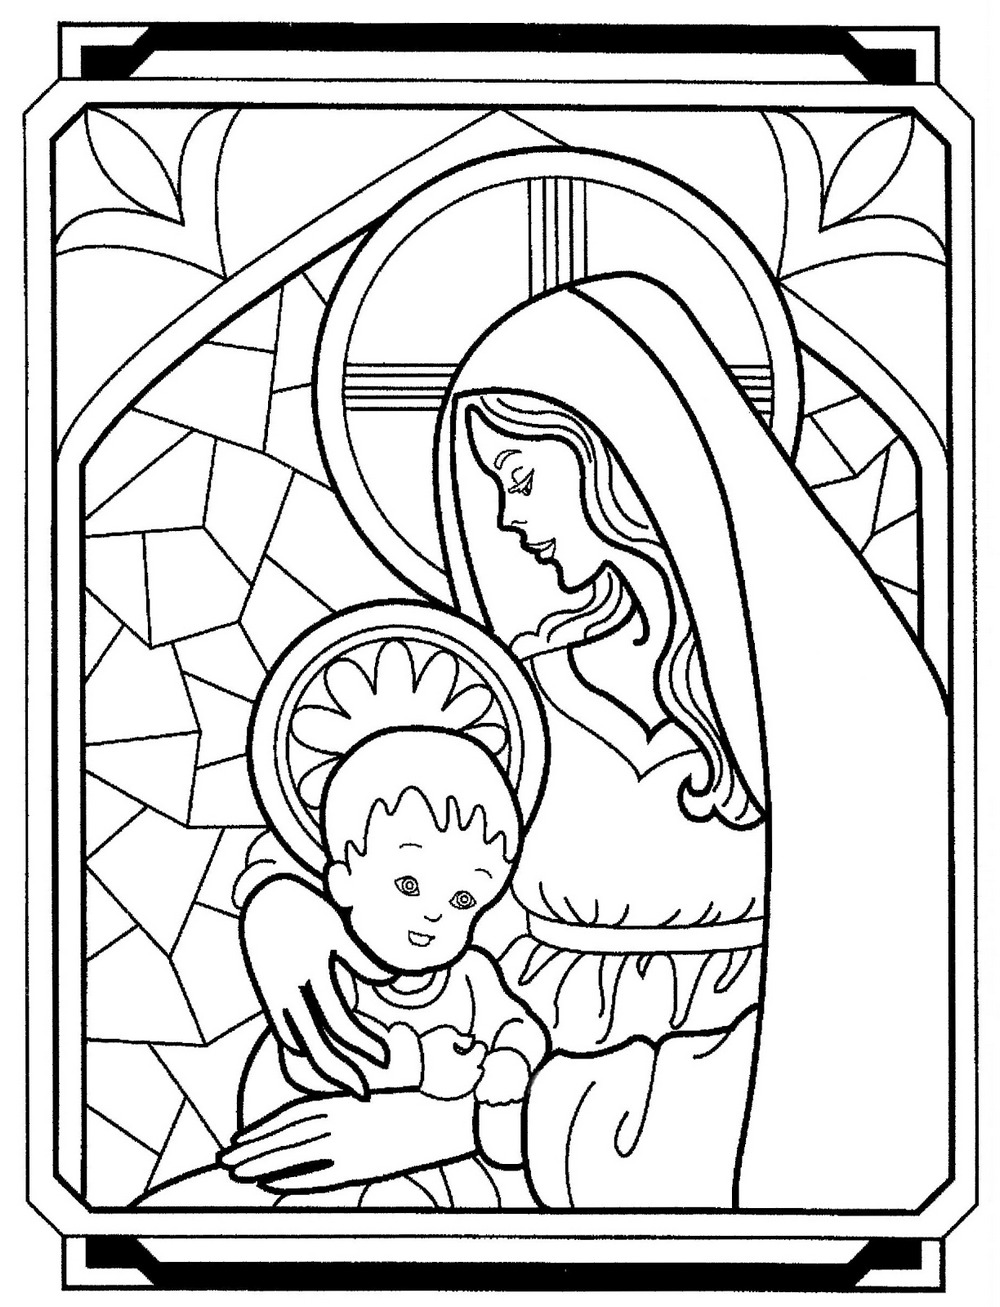 mother-mary-coloring-books